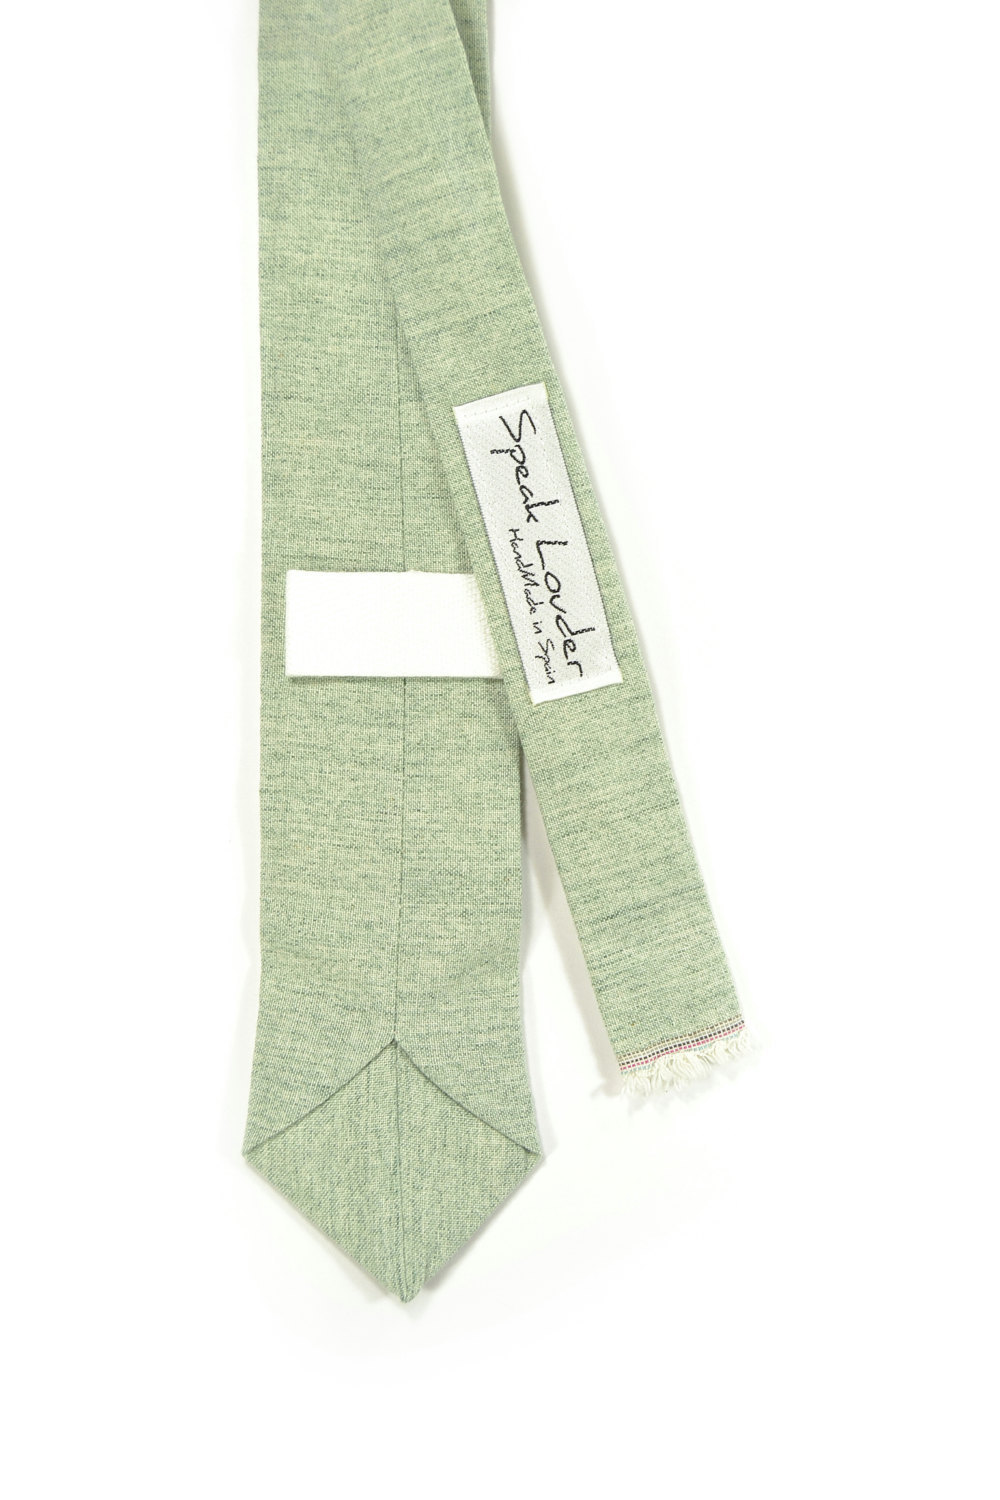 Wedding Mens Tie Skinny Necktie blush green- Laid-Back necktie- Green Japanese f image 3